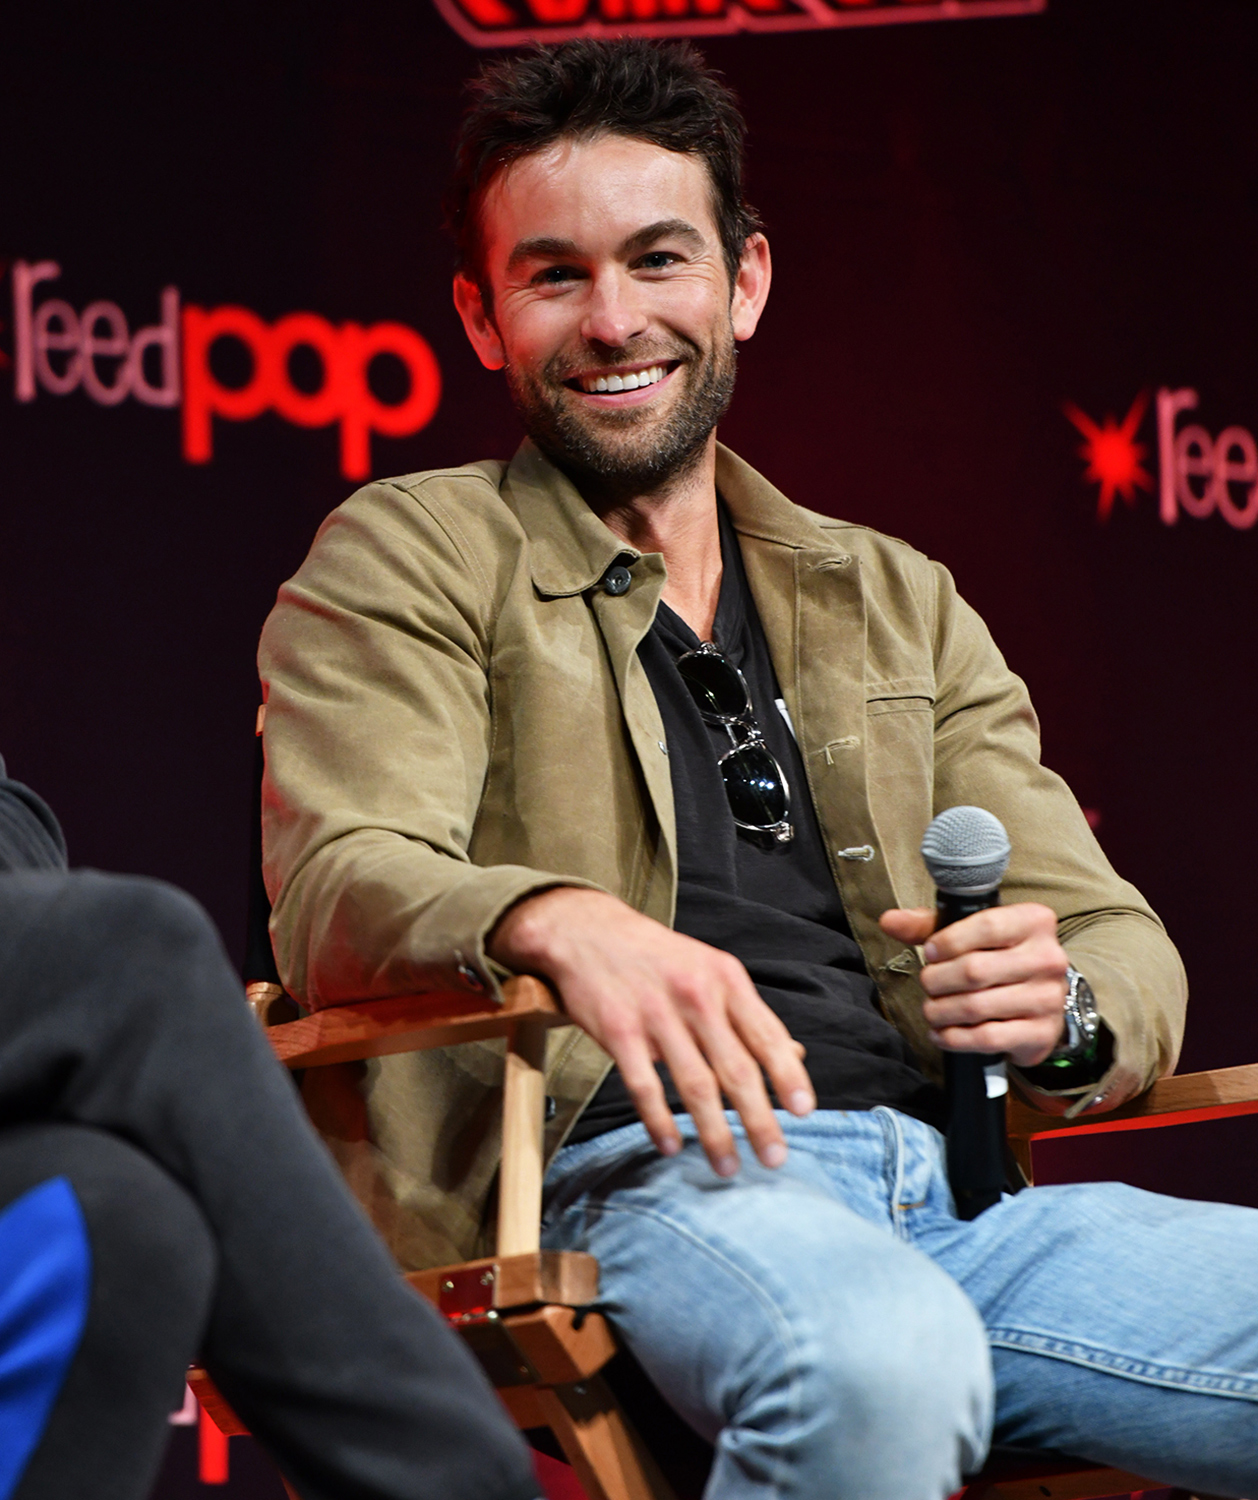 Chace Crawford speaks onstage at The Boys panel during Day 2 of New York Comic Con 2021 at Jacob Javits Center on October 08, 2021 in New York City.